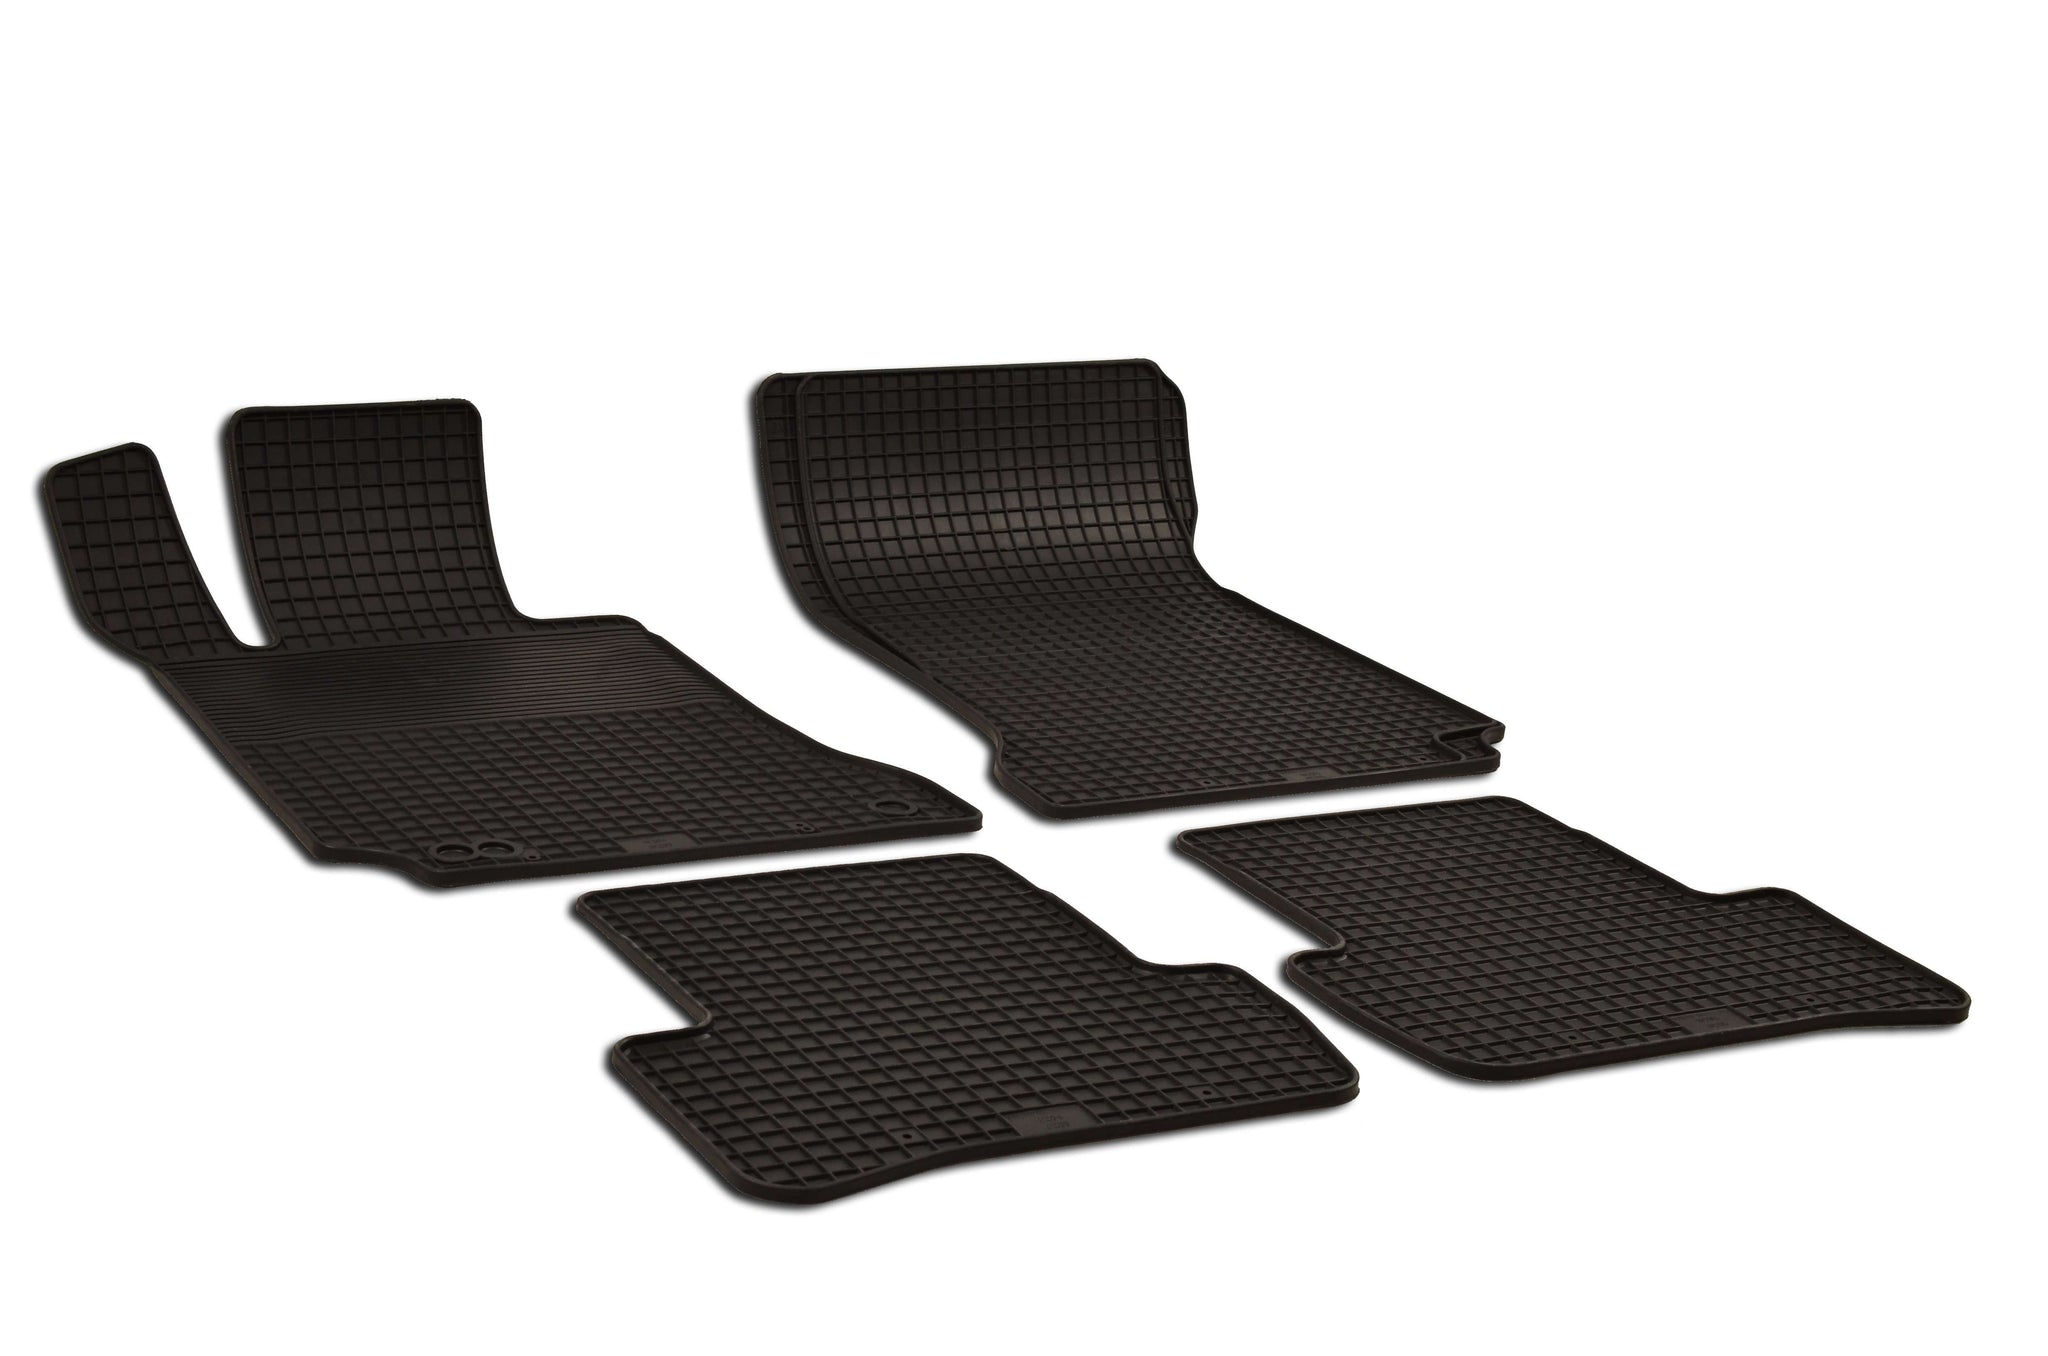 Mercedes C300 2010 Sedan Sport 204.054 Set of 4 Black Rubber OE Fit All Weather Car Floor Mats